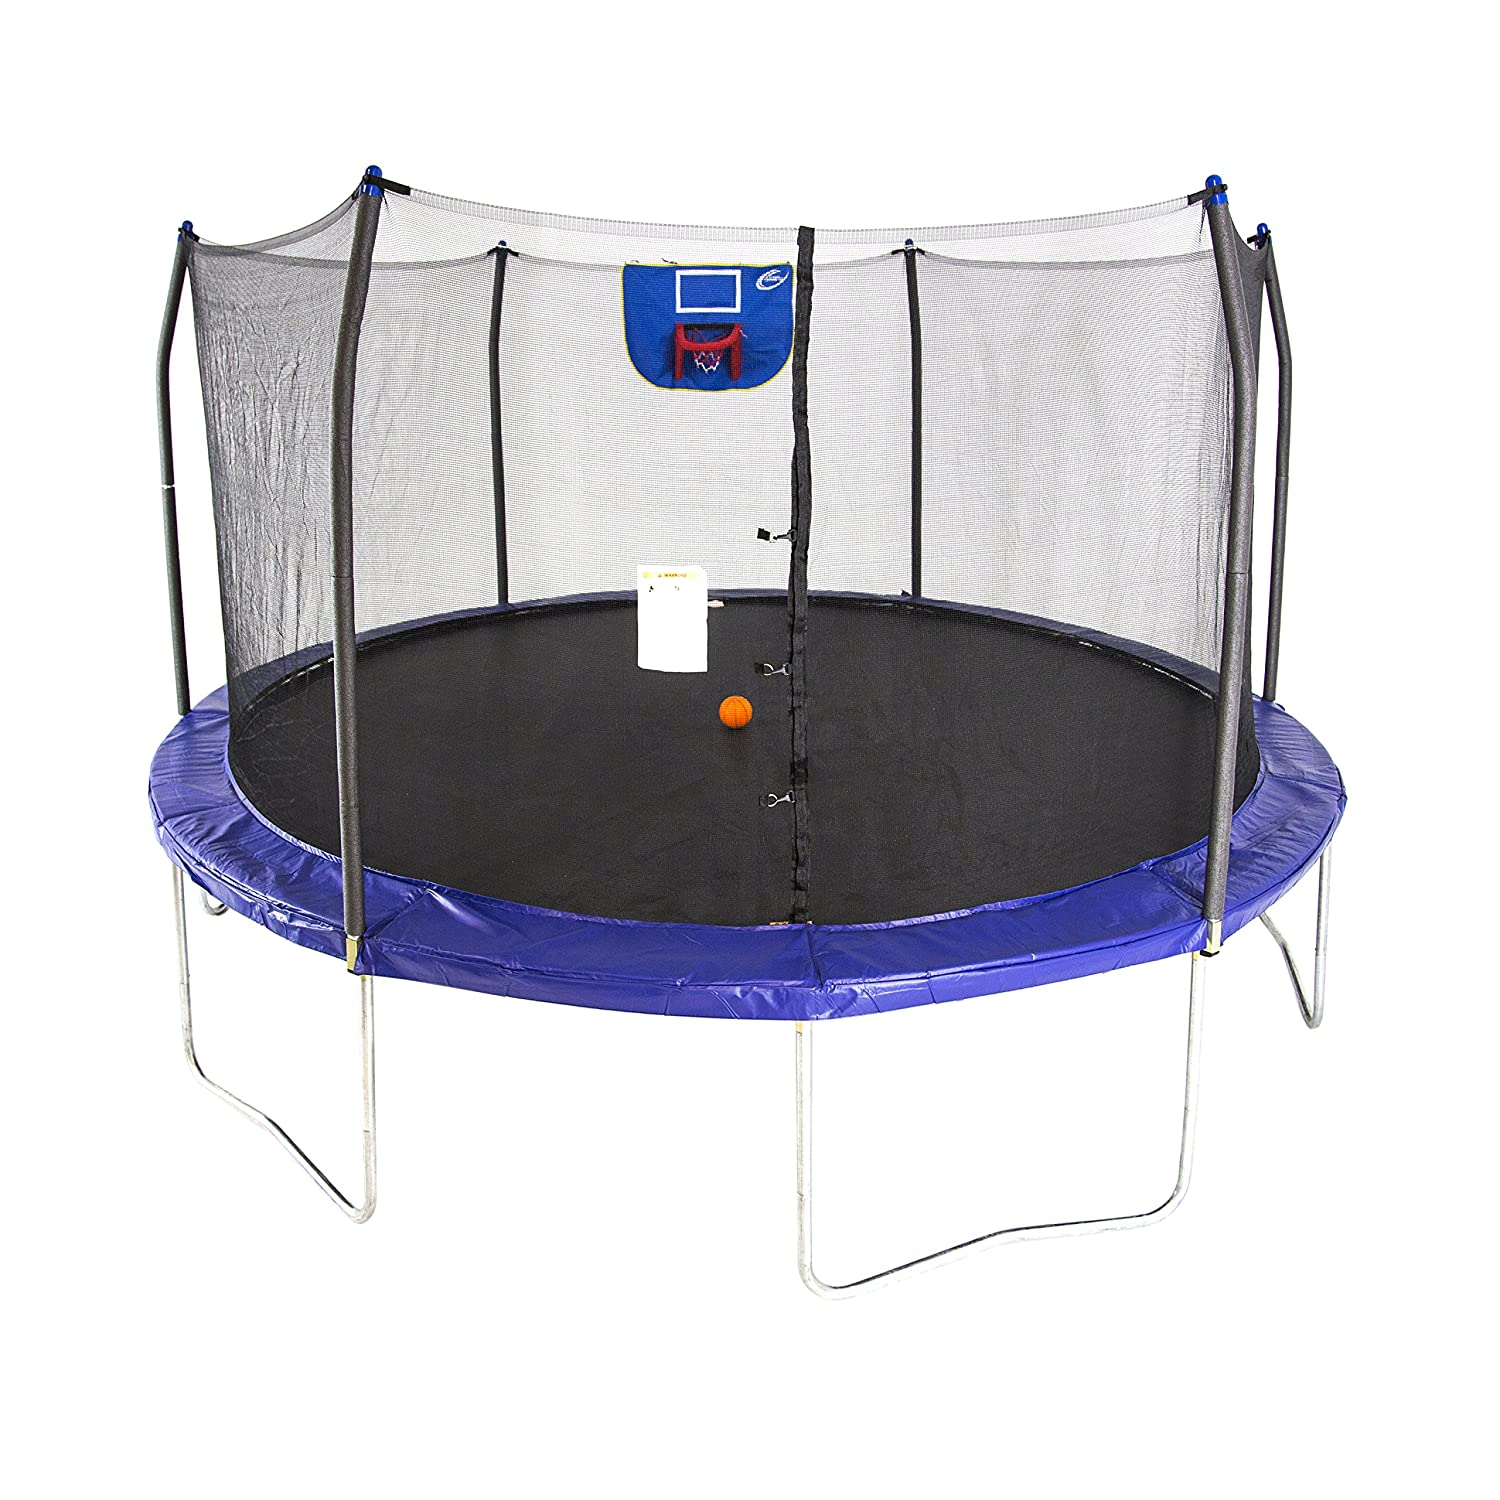 Trampoline for children: both entertains and physically develops 12